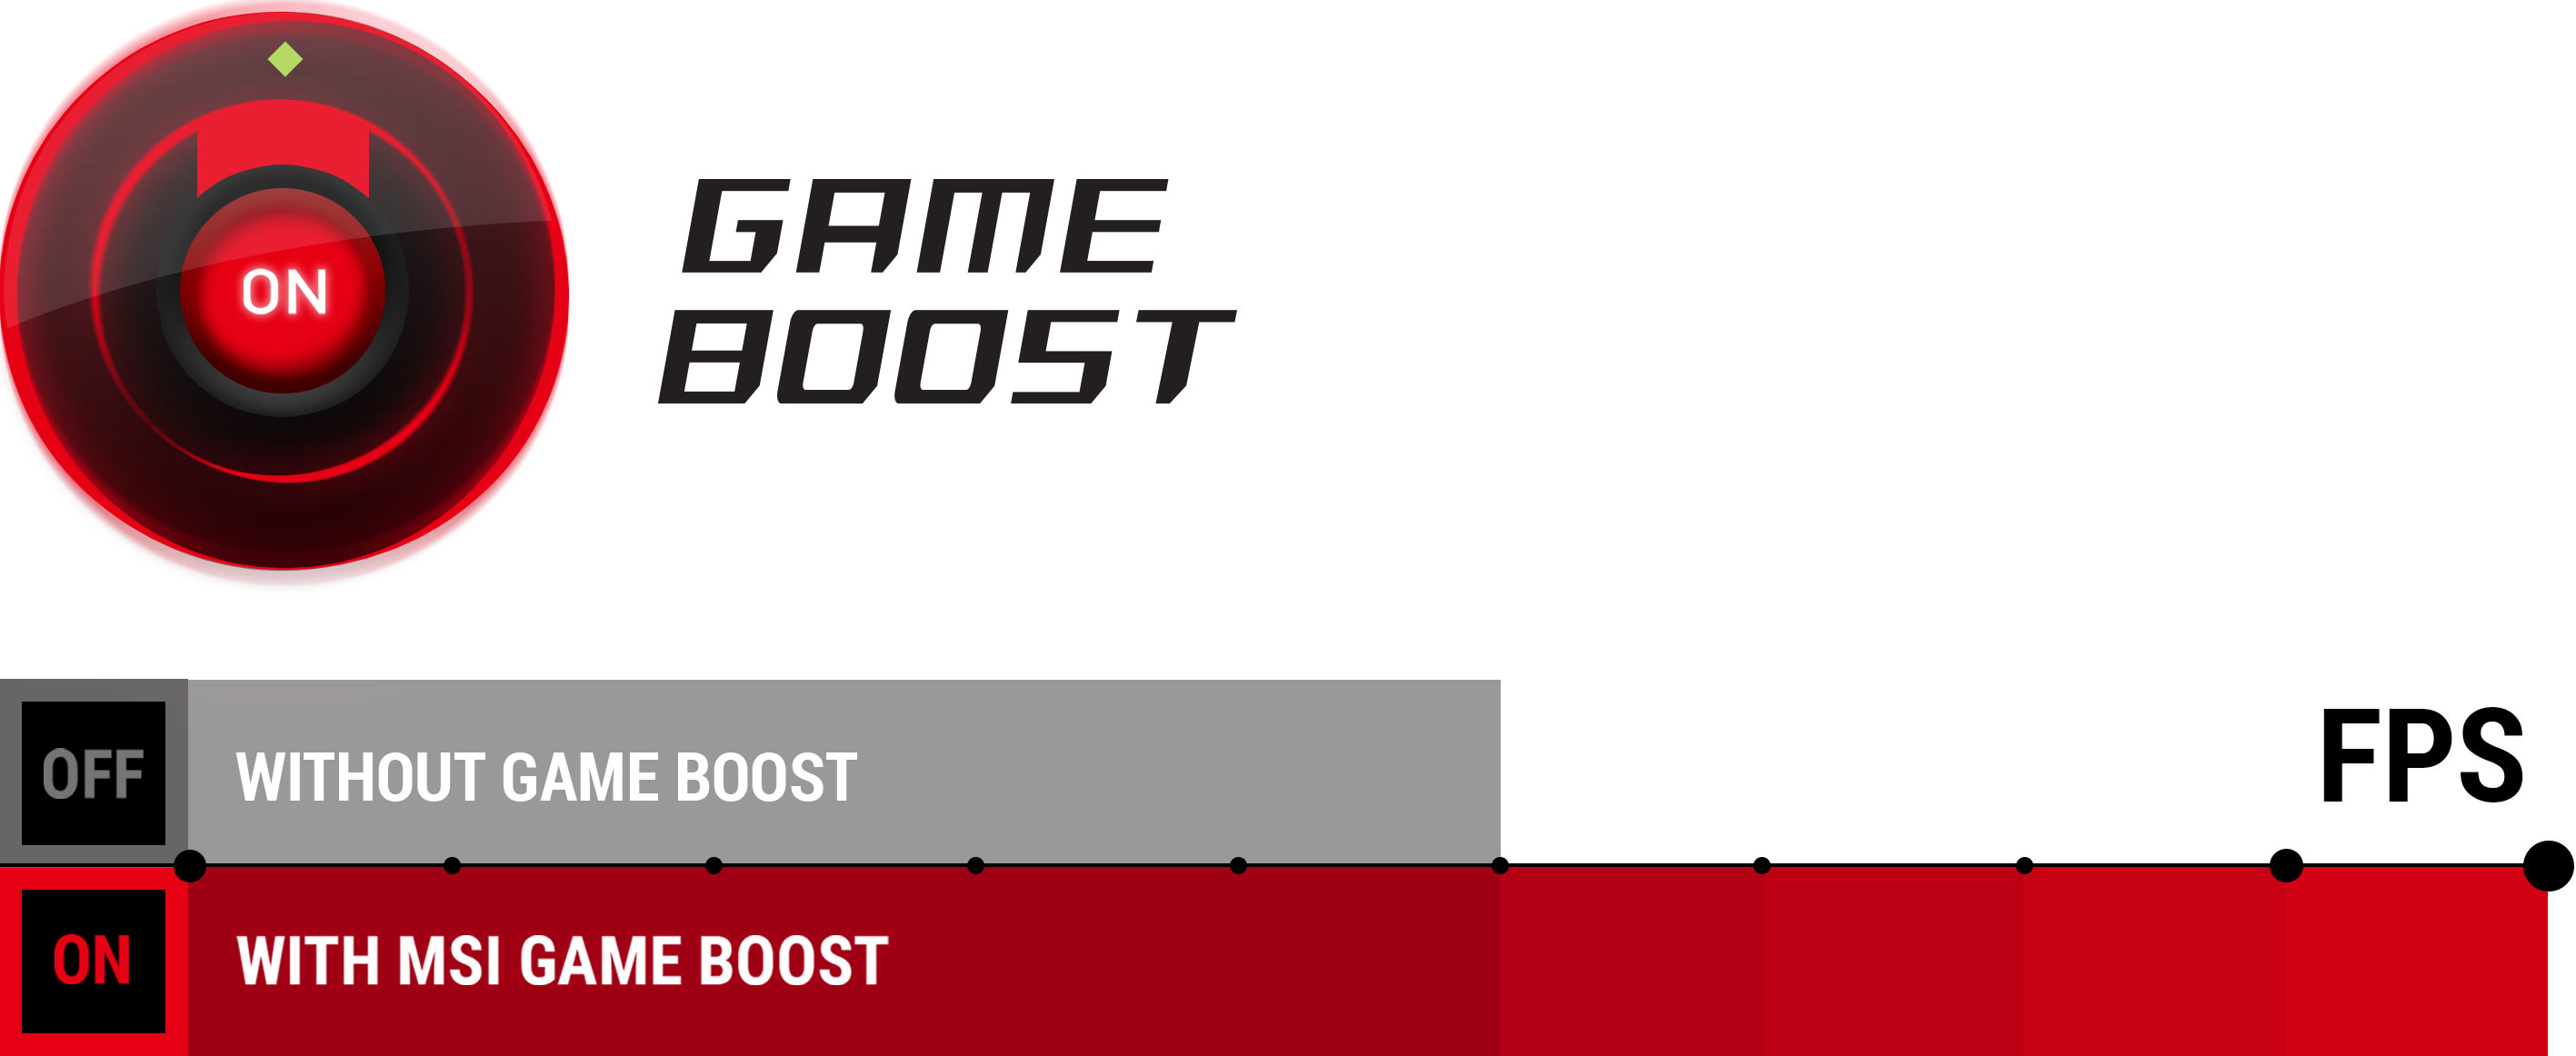 Game Boost 1 second overclocking